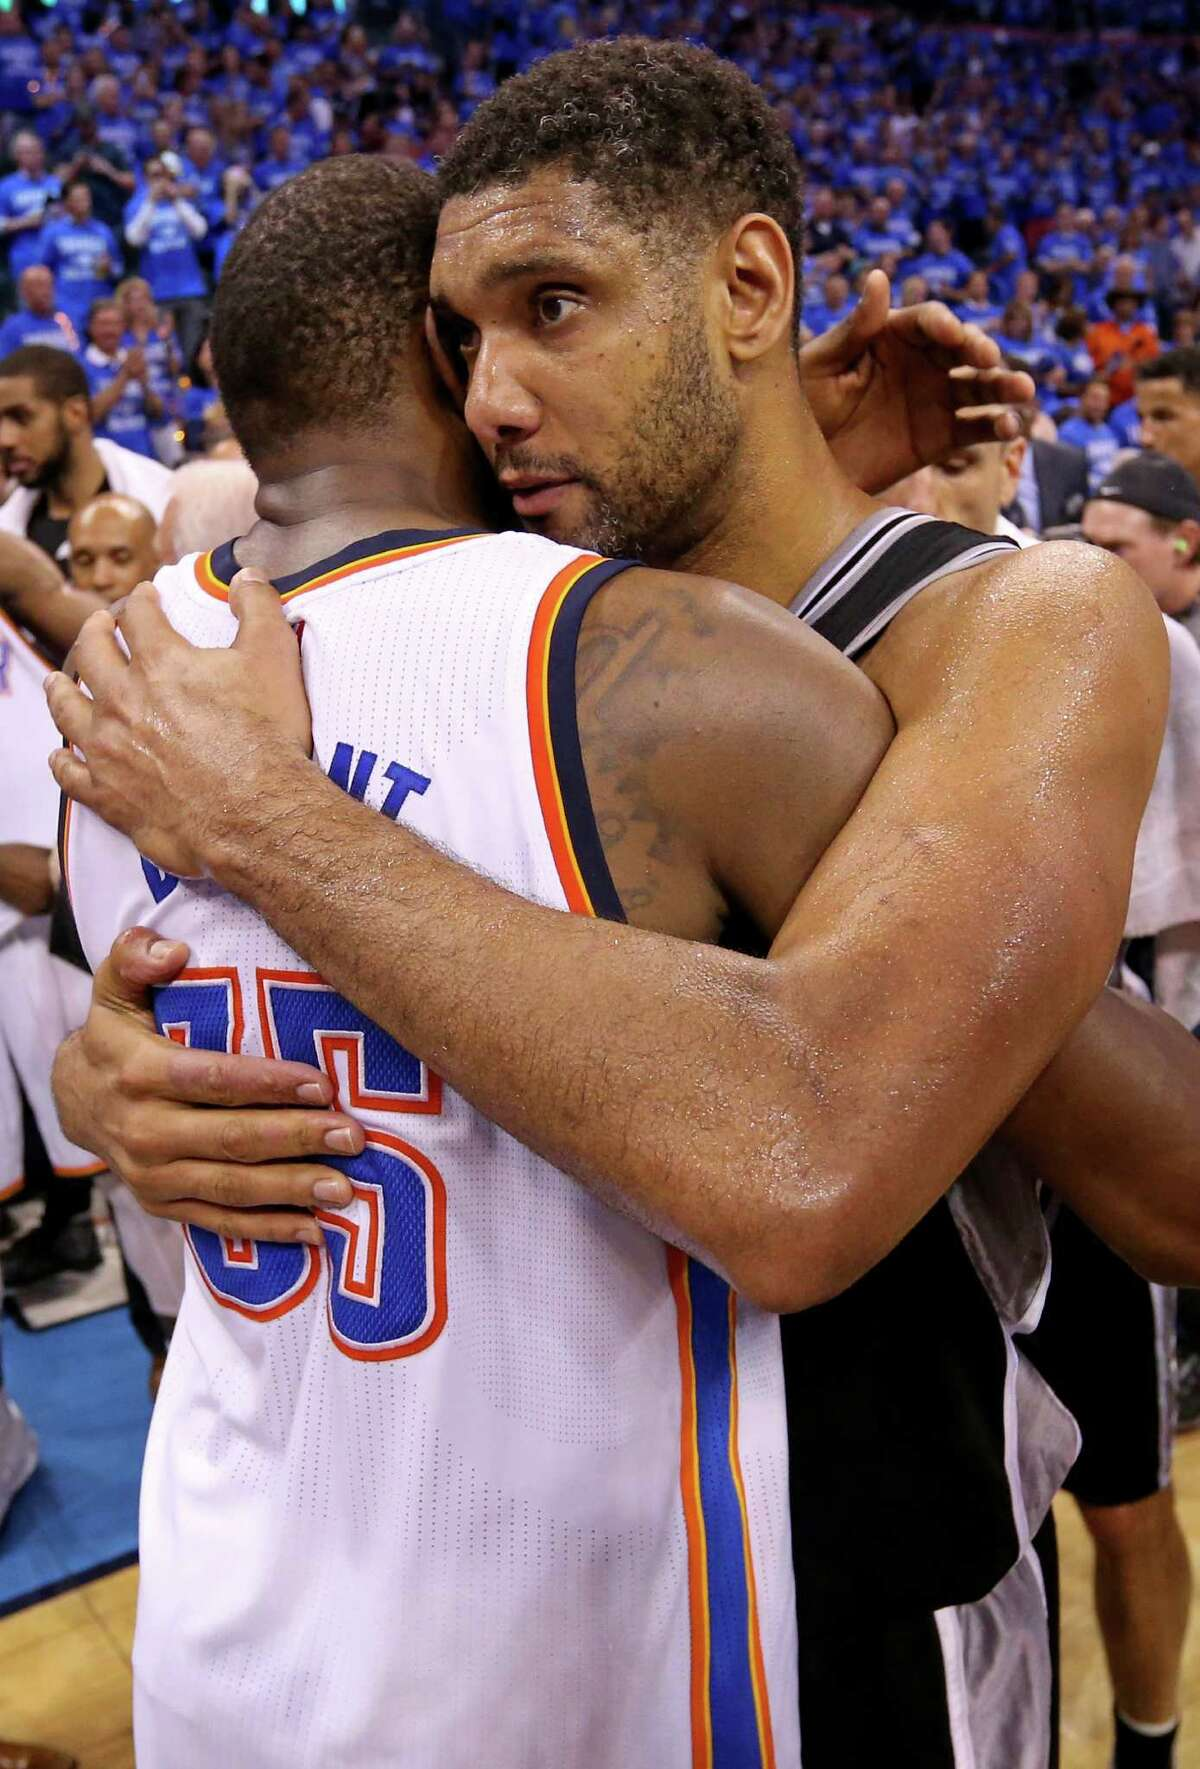 Oklahoma City Thunder's Kevin Durant and the Spurs' Tim Duncan hug after Game 6 in the Western Conference semifinals on May 12, 2016 at Chesapeake Energy Arena.